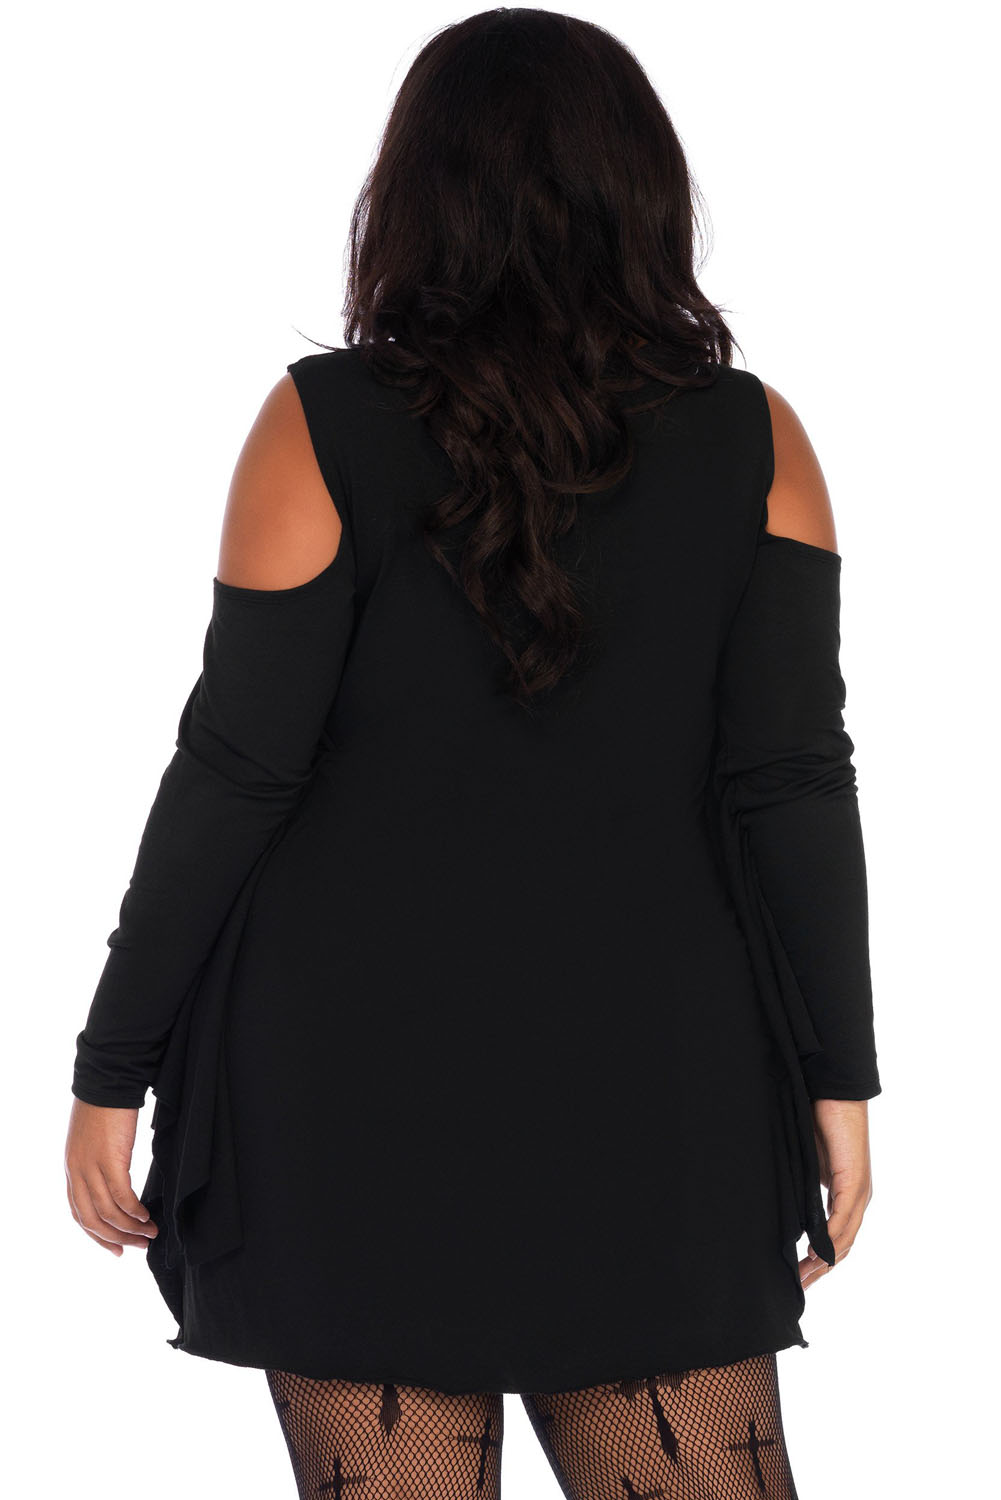 BY89052-2 Spiderweb Plus Size Jersey Tunic Dress